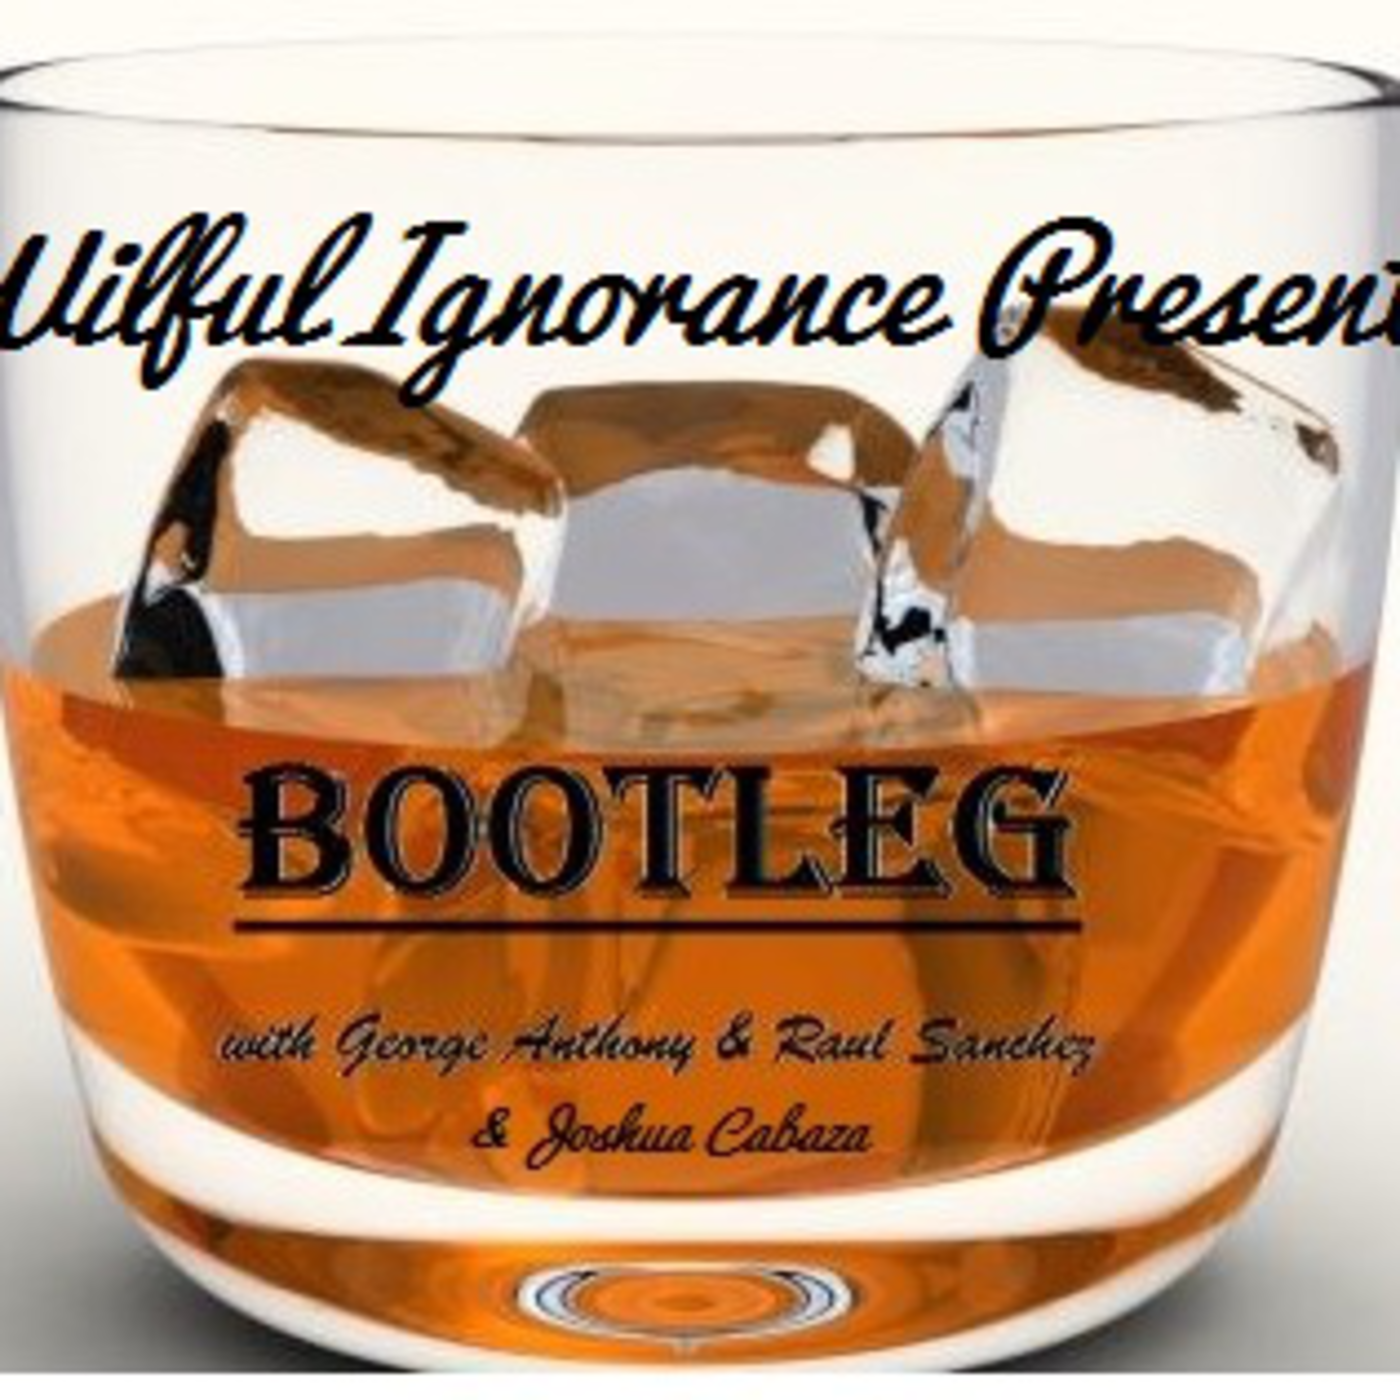 Wilful Ignorance presents Bootleg